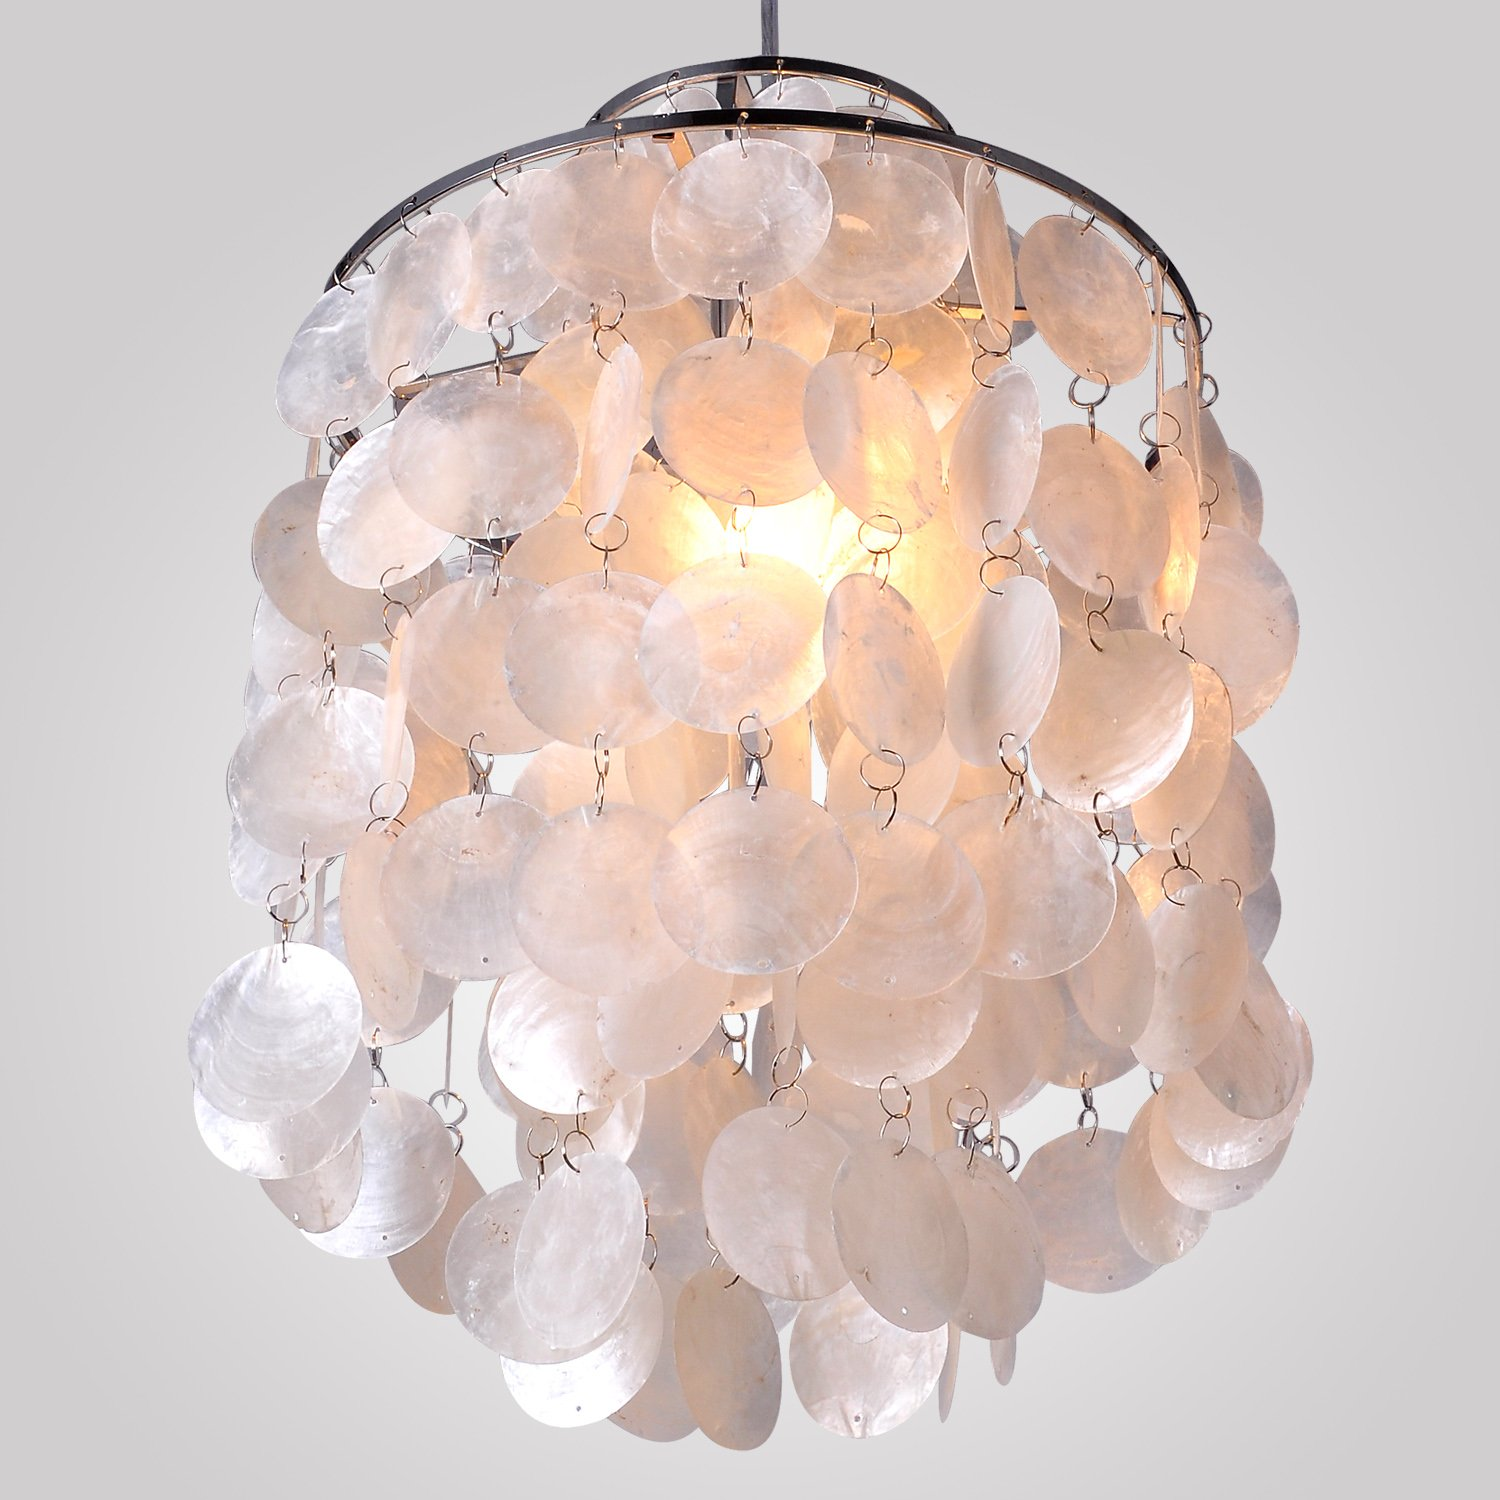 White Shell Chandelier light collections Light Ideas